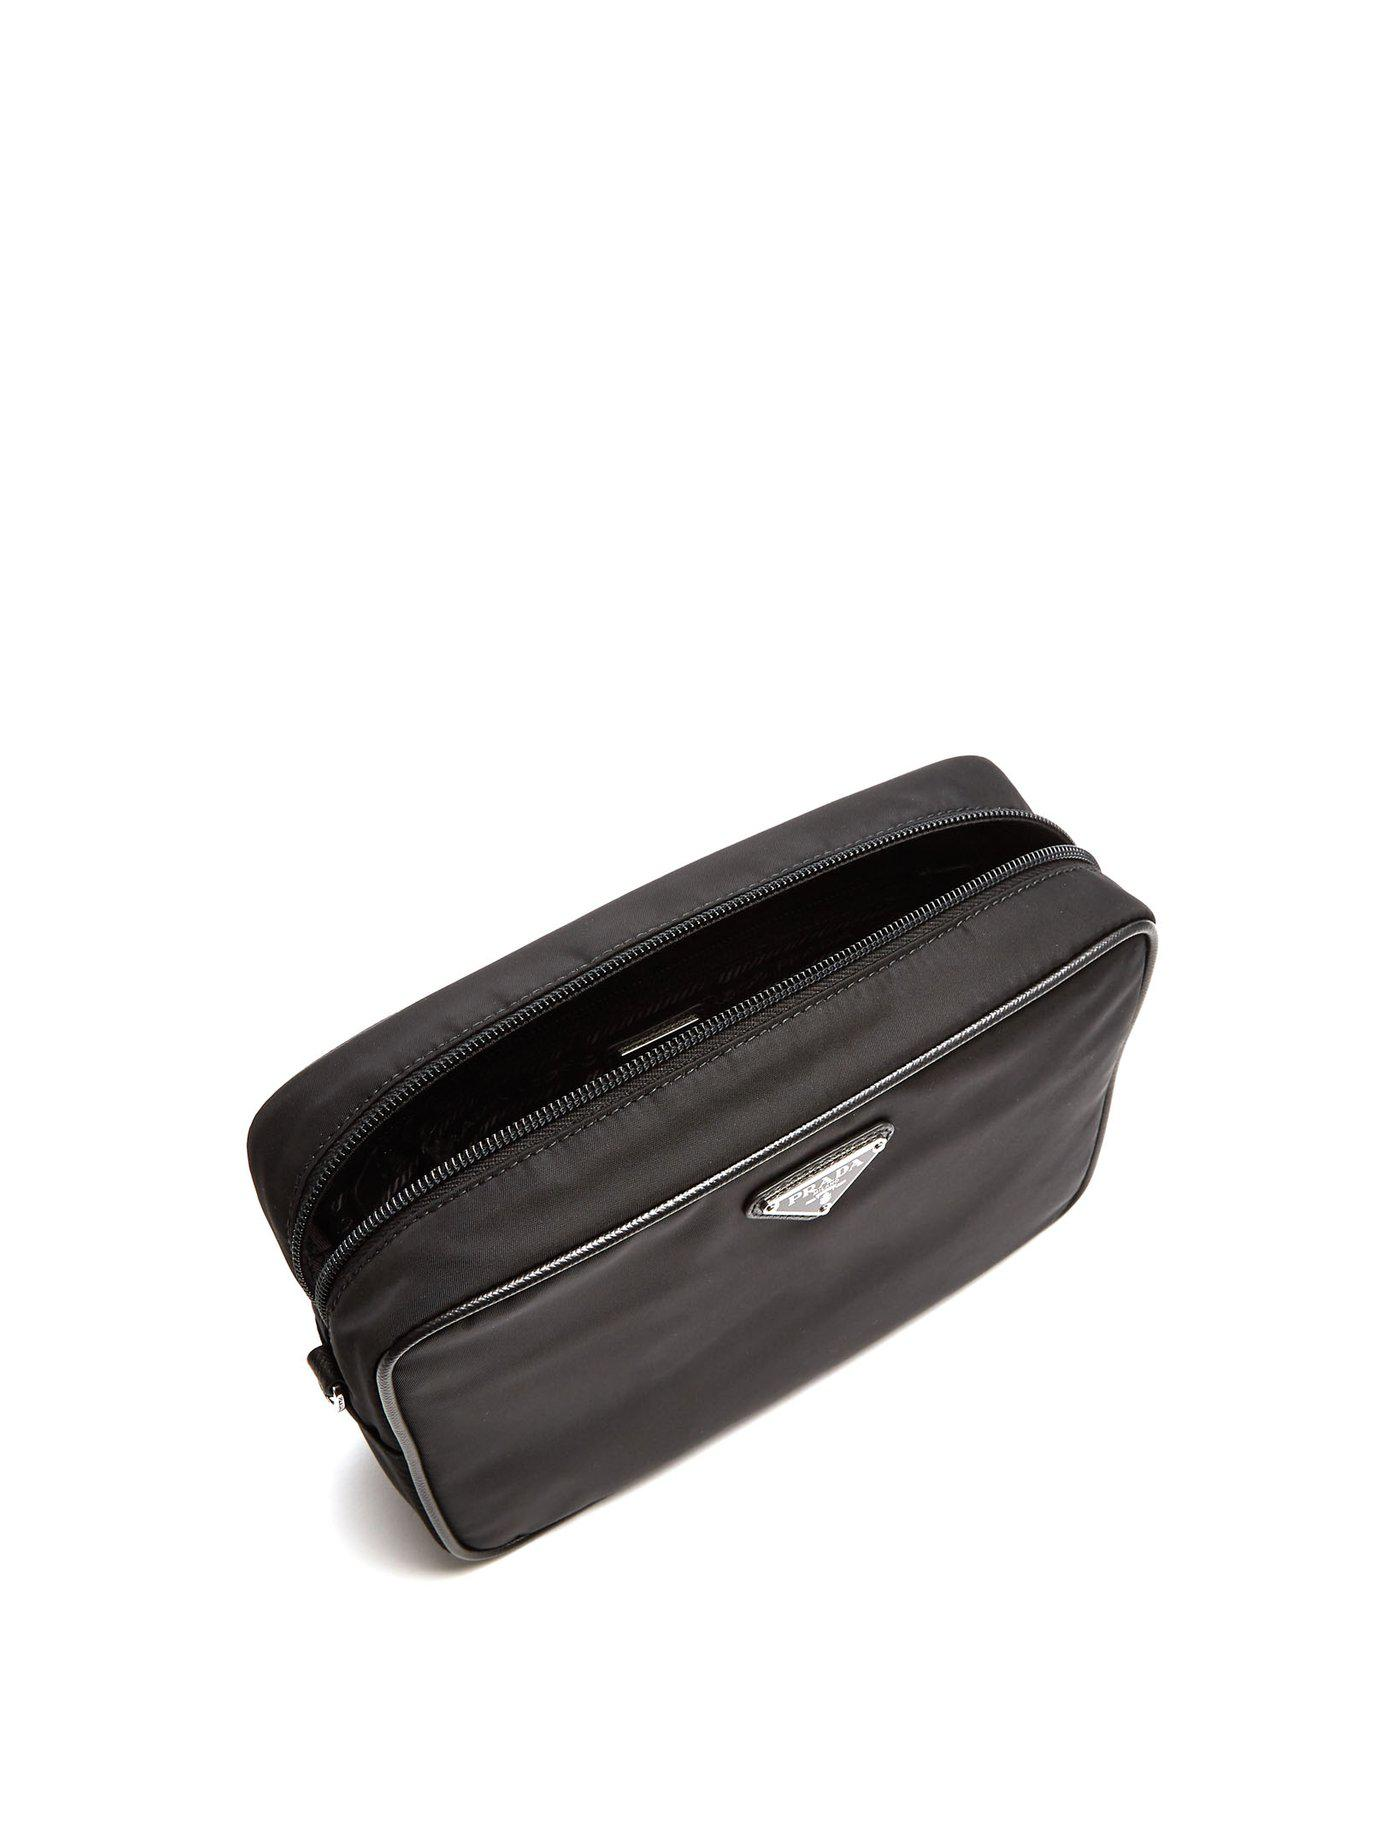 f01edc0f25f1 Prada Leather Trimmed Nylon Wash Bag in Black for Men - Save 34% - Lyst